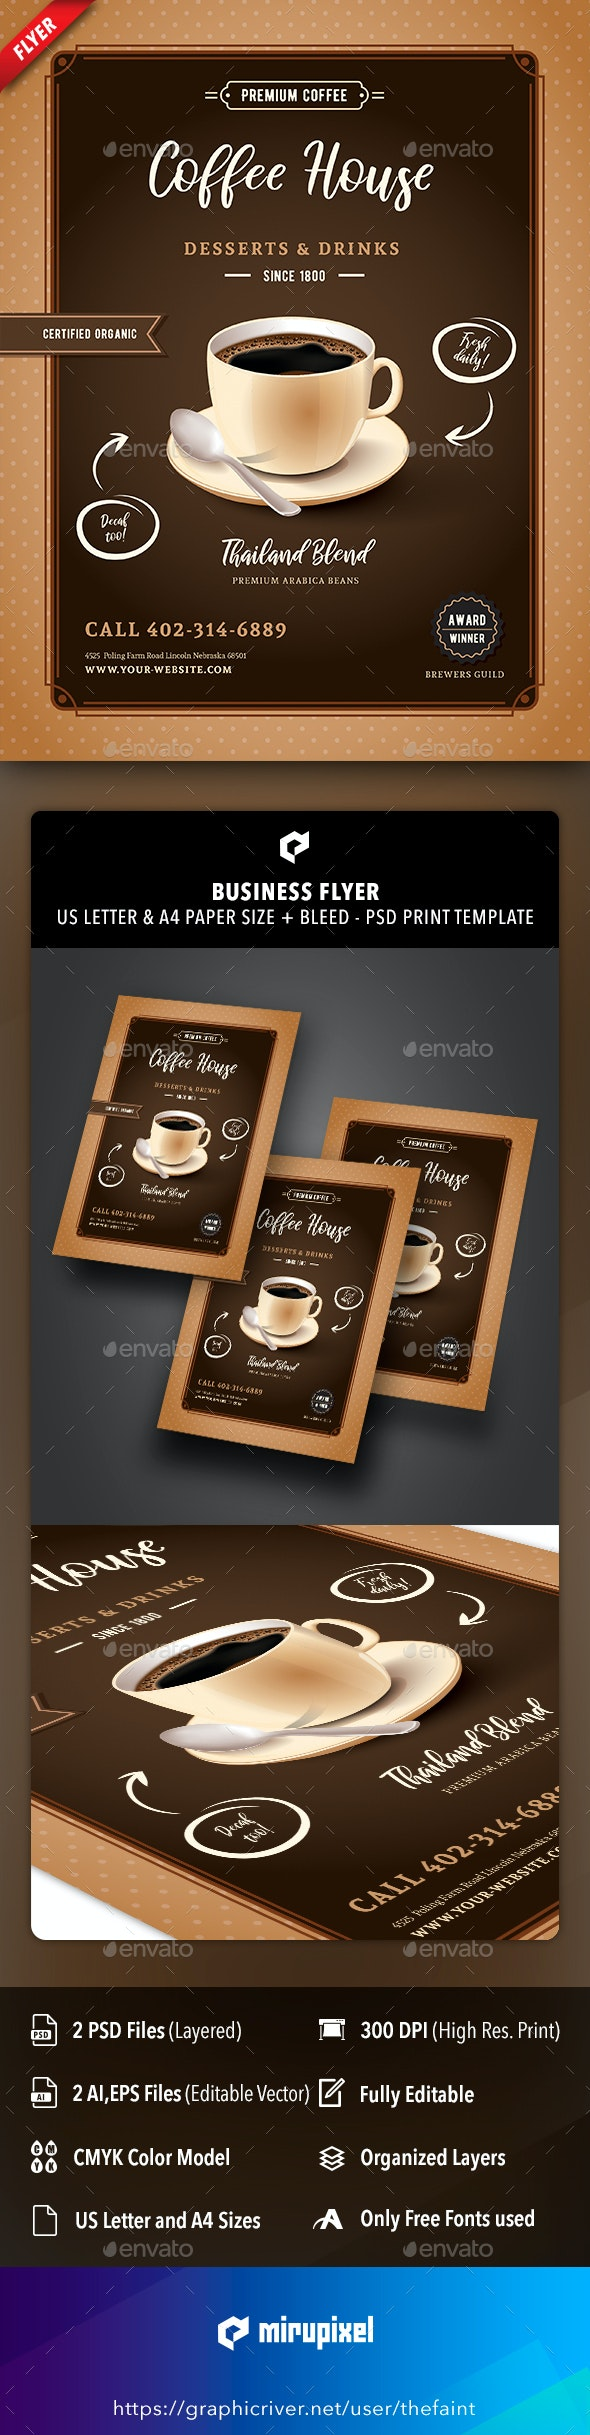 Coffee House Business Flyer - Commerce Flyers